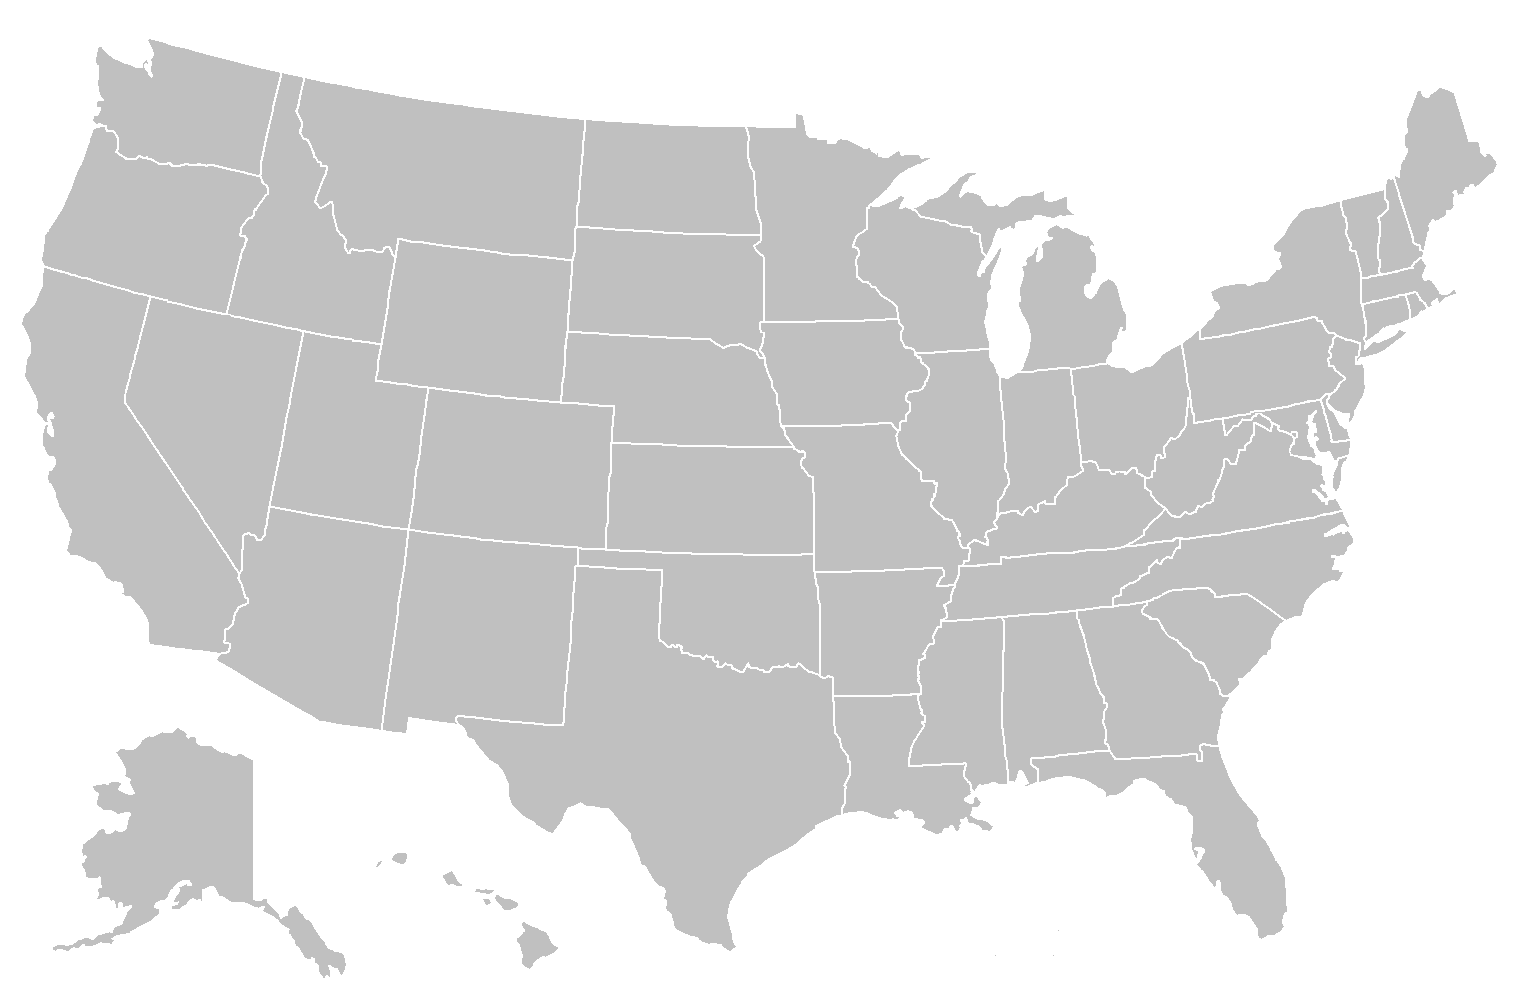 FileBlankMapUSAstatesPNG Wikimedia Commons - Us map wikipedia